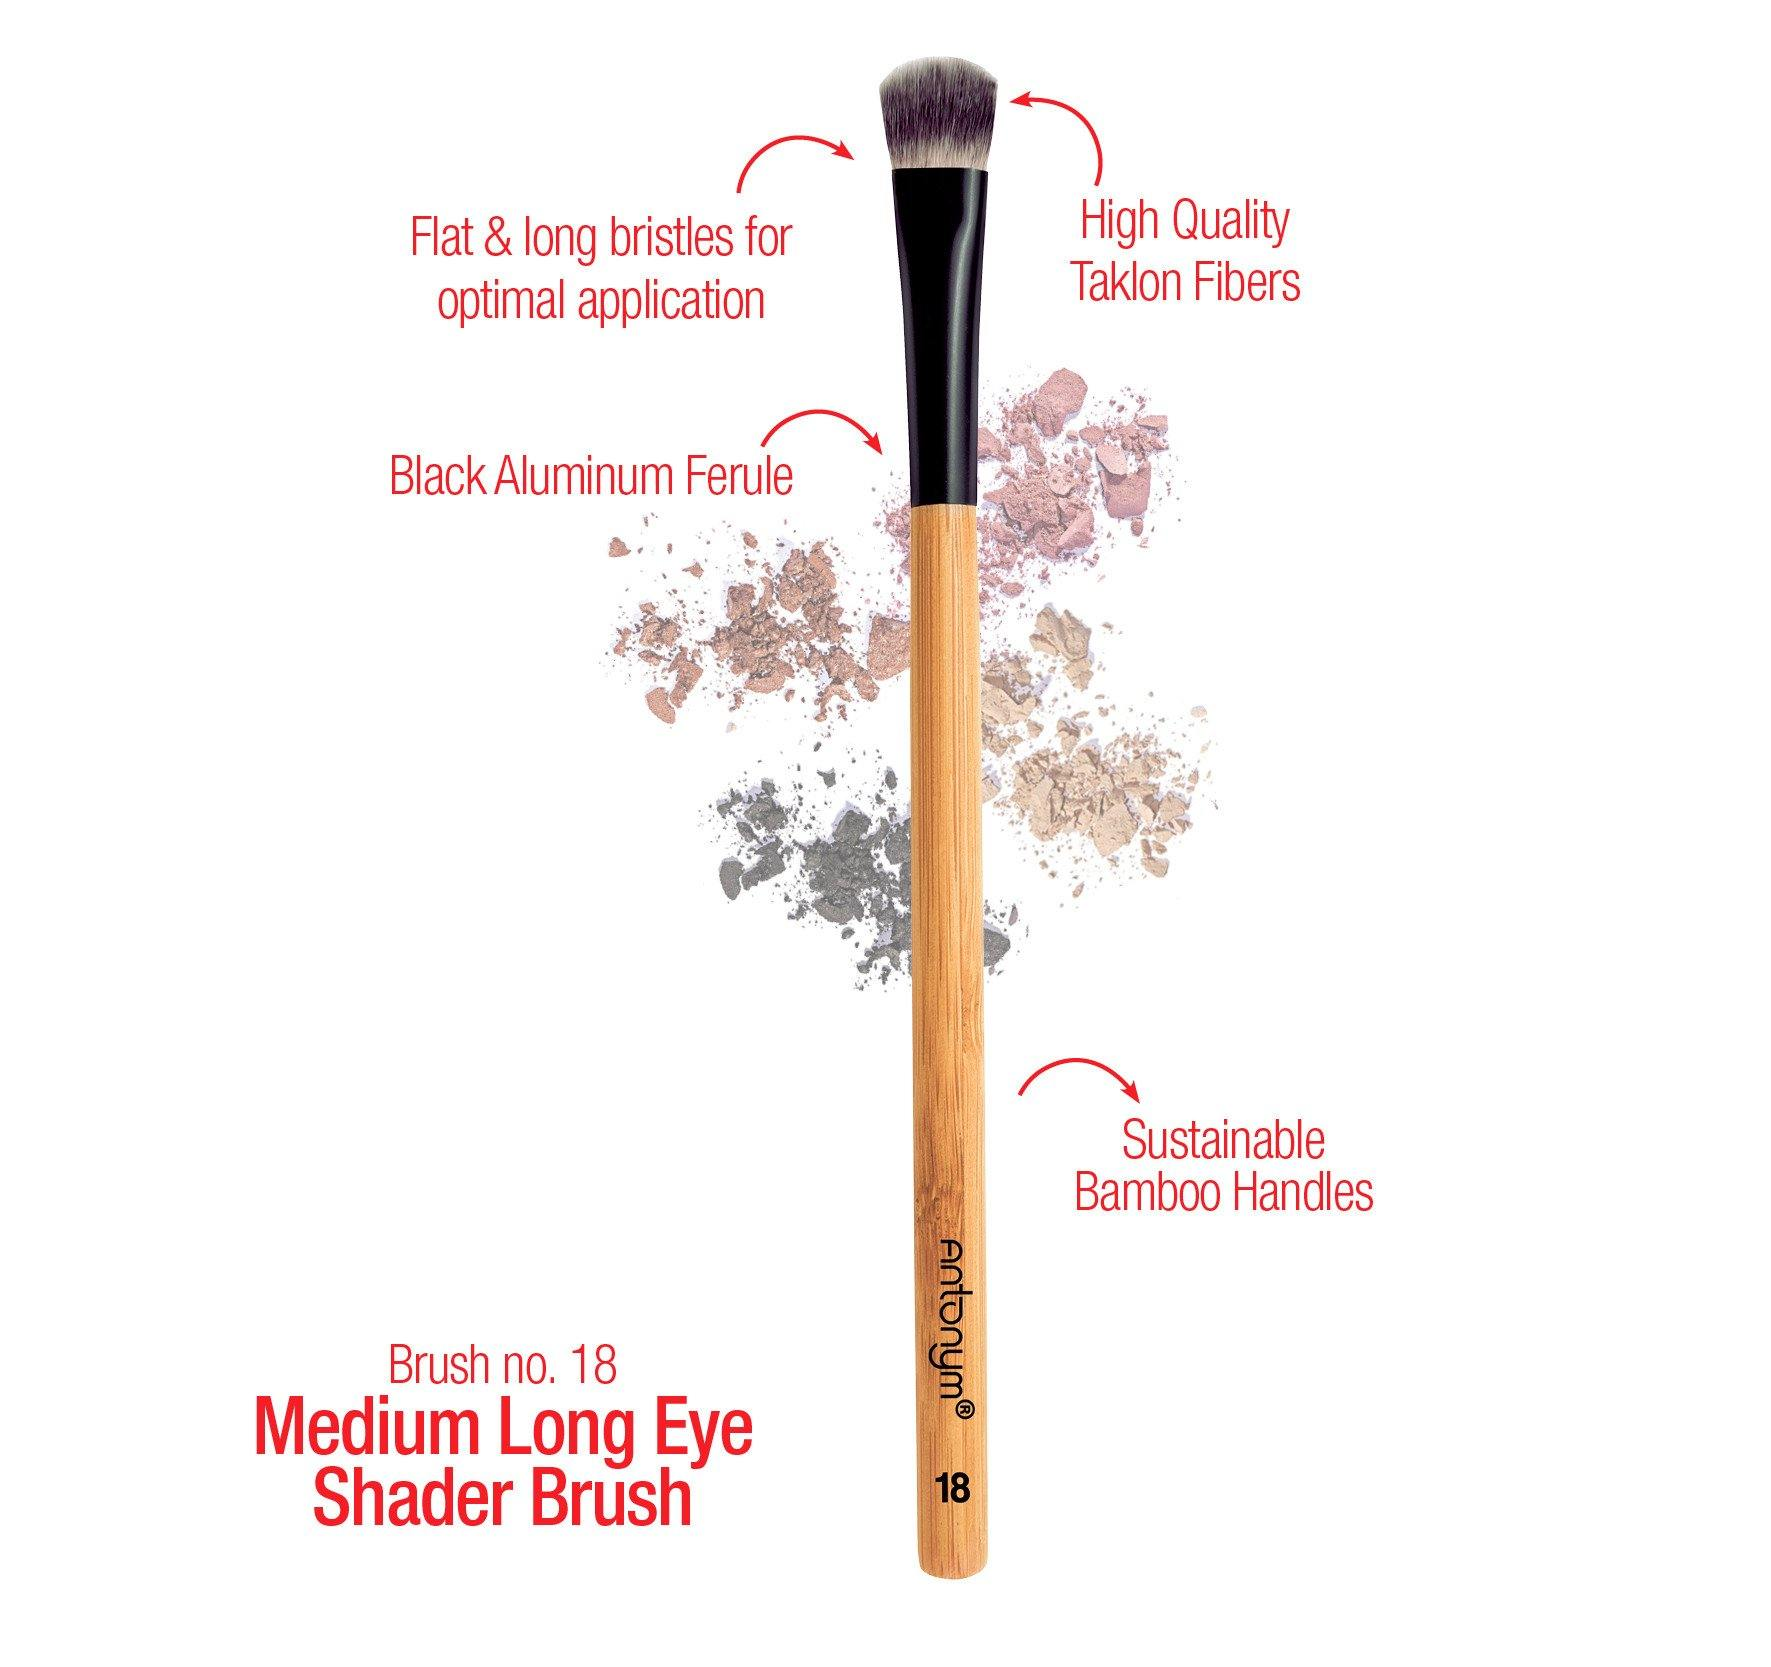 Med Long Eye Shader Brush #18 - Antonym Cosmetics